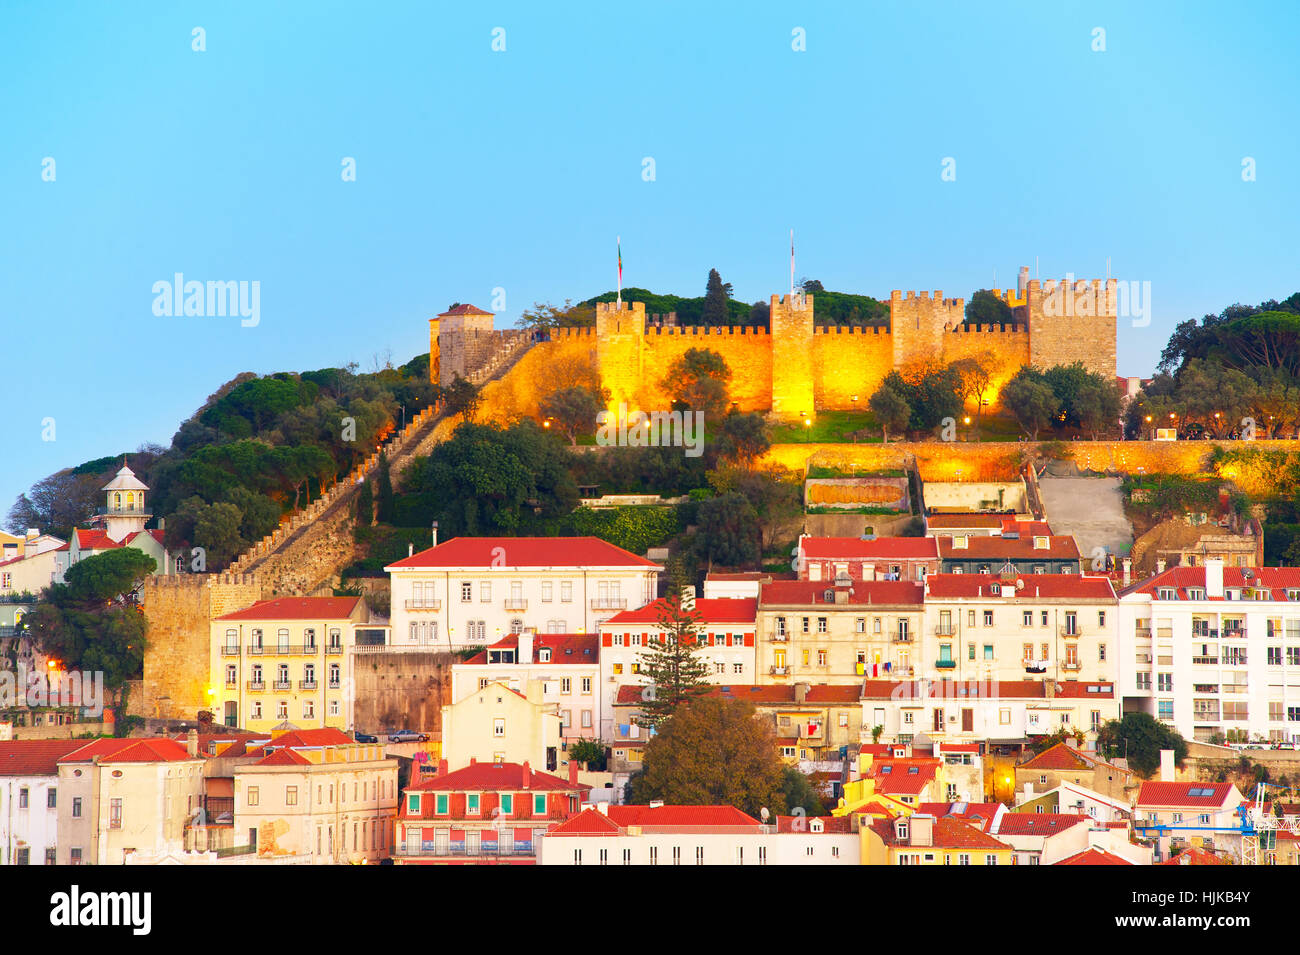 Lisbon Castle on a top of a hill at twilight. Lisbon, Portugal - Stock Image